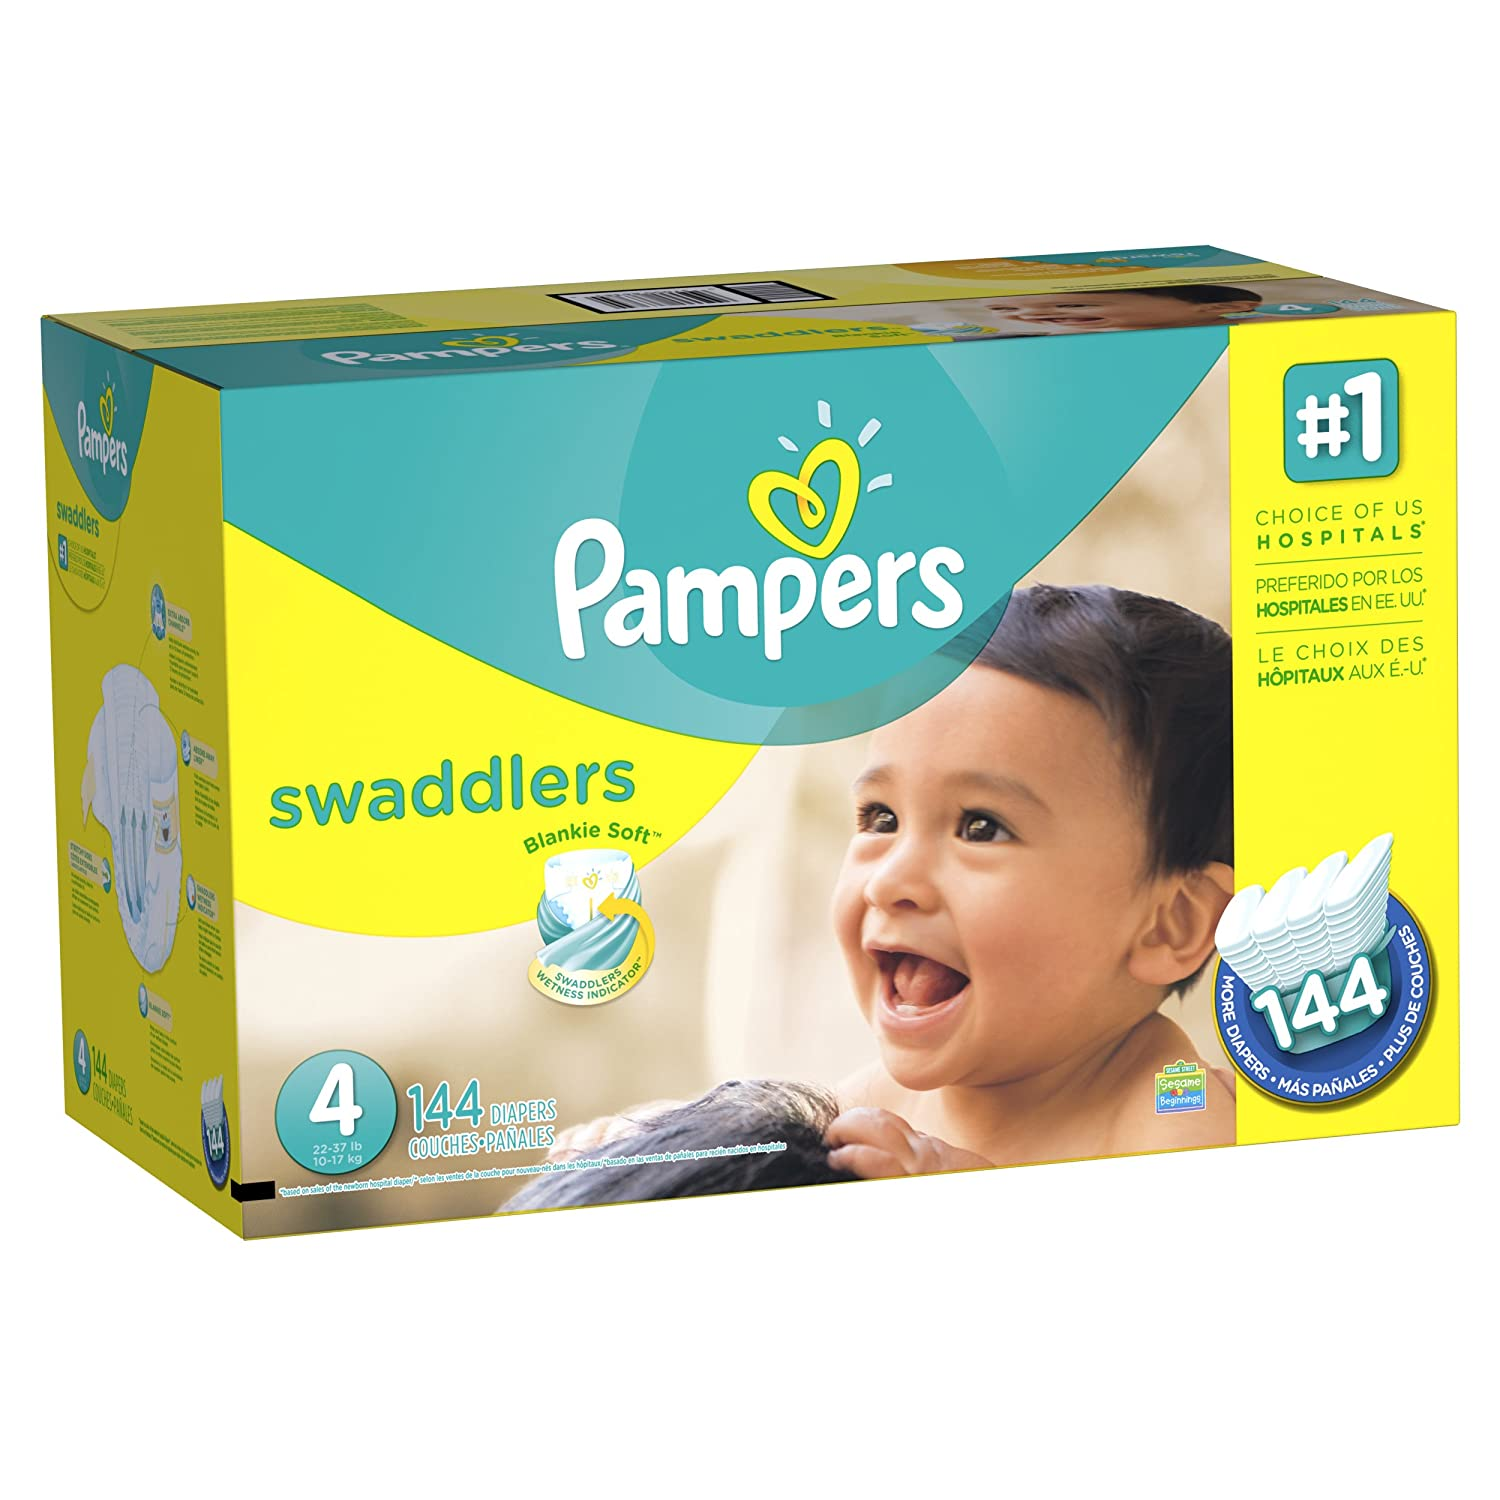 Pampers Swaddlers Diapers Economy Pack Plus, Size 4 (144 ...